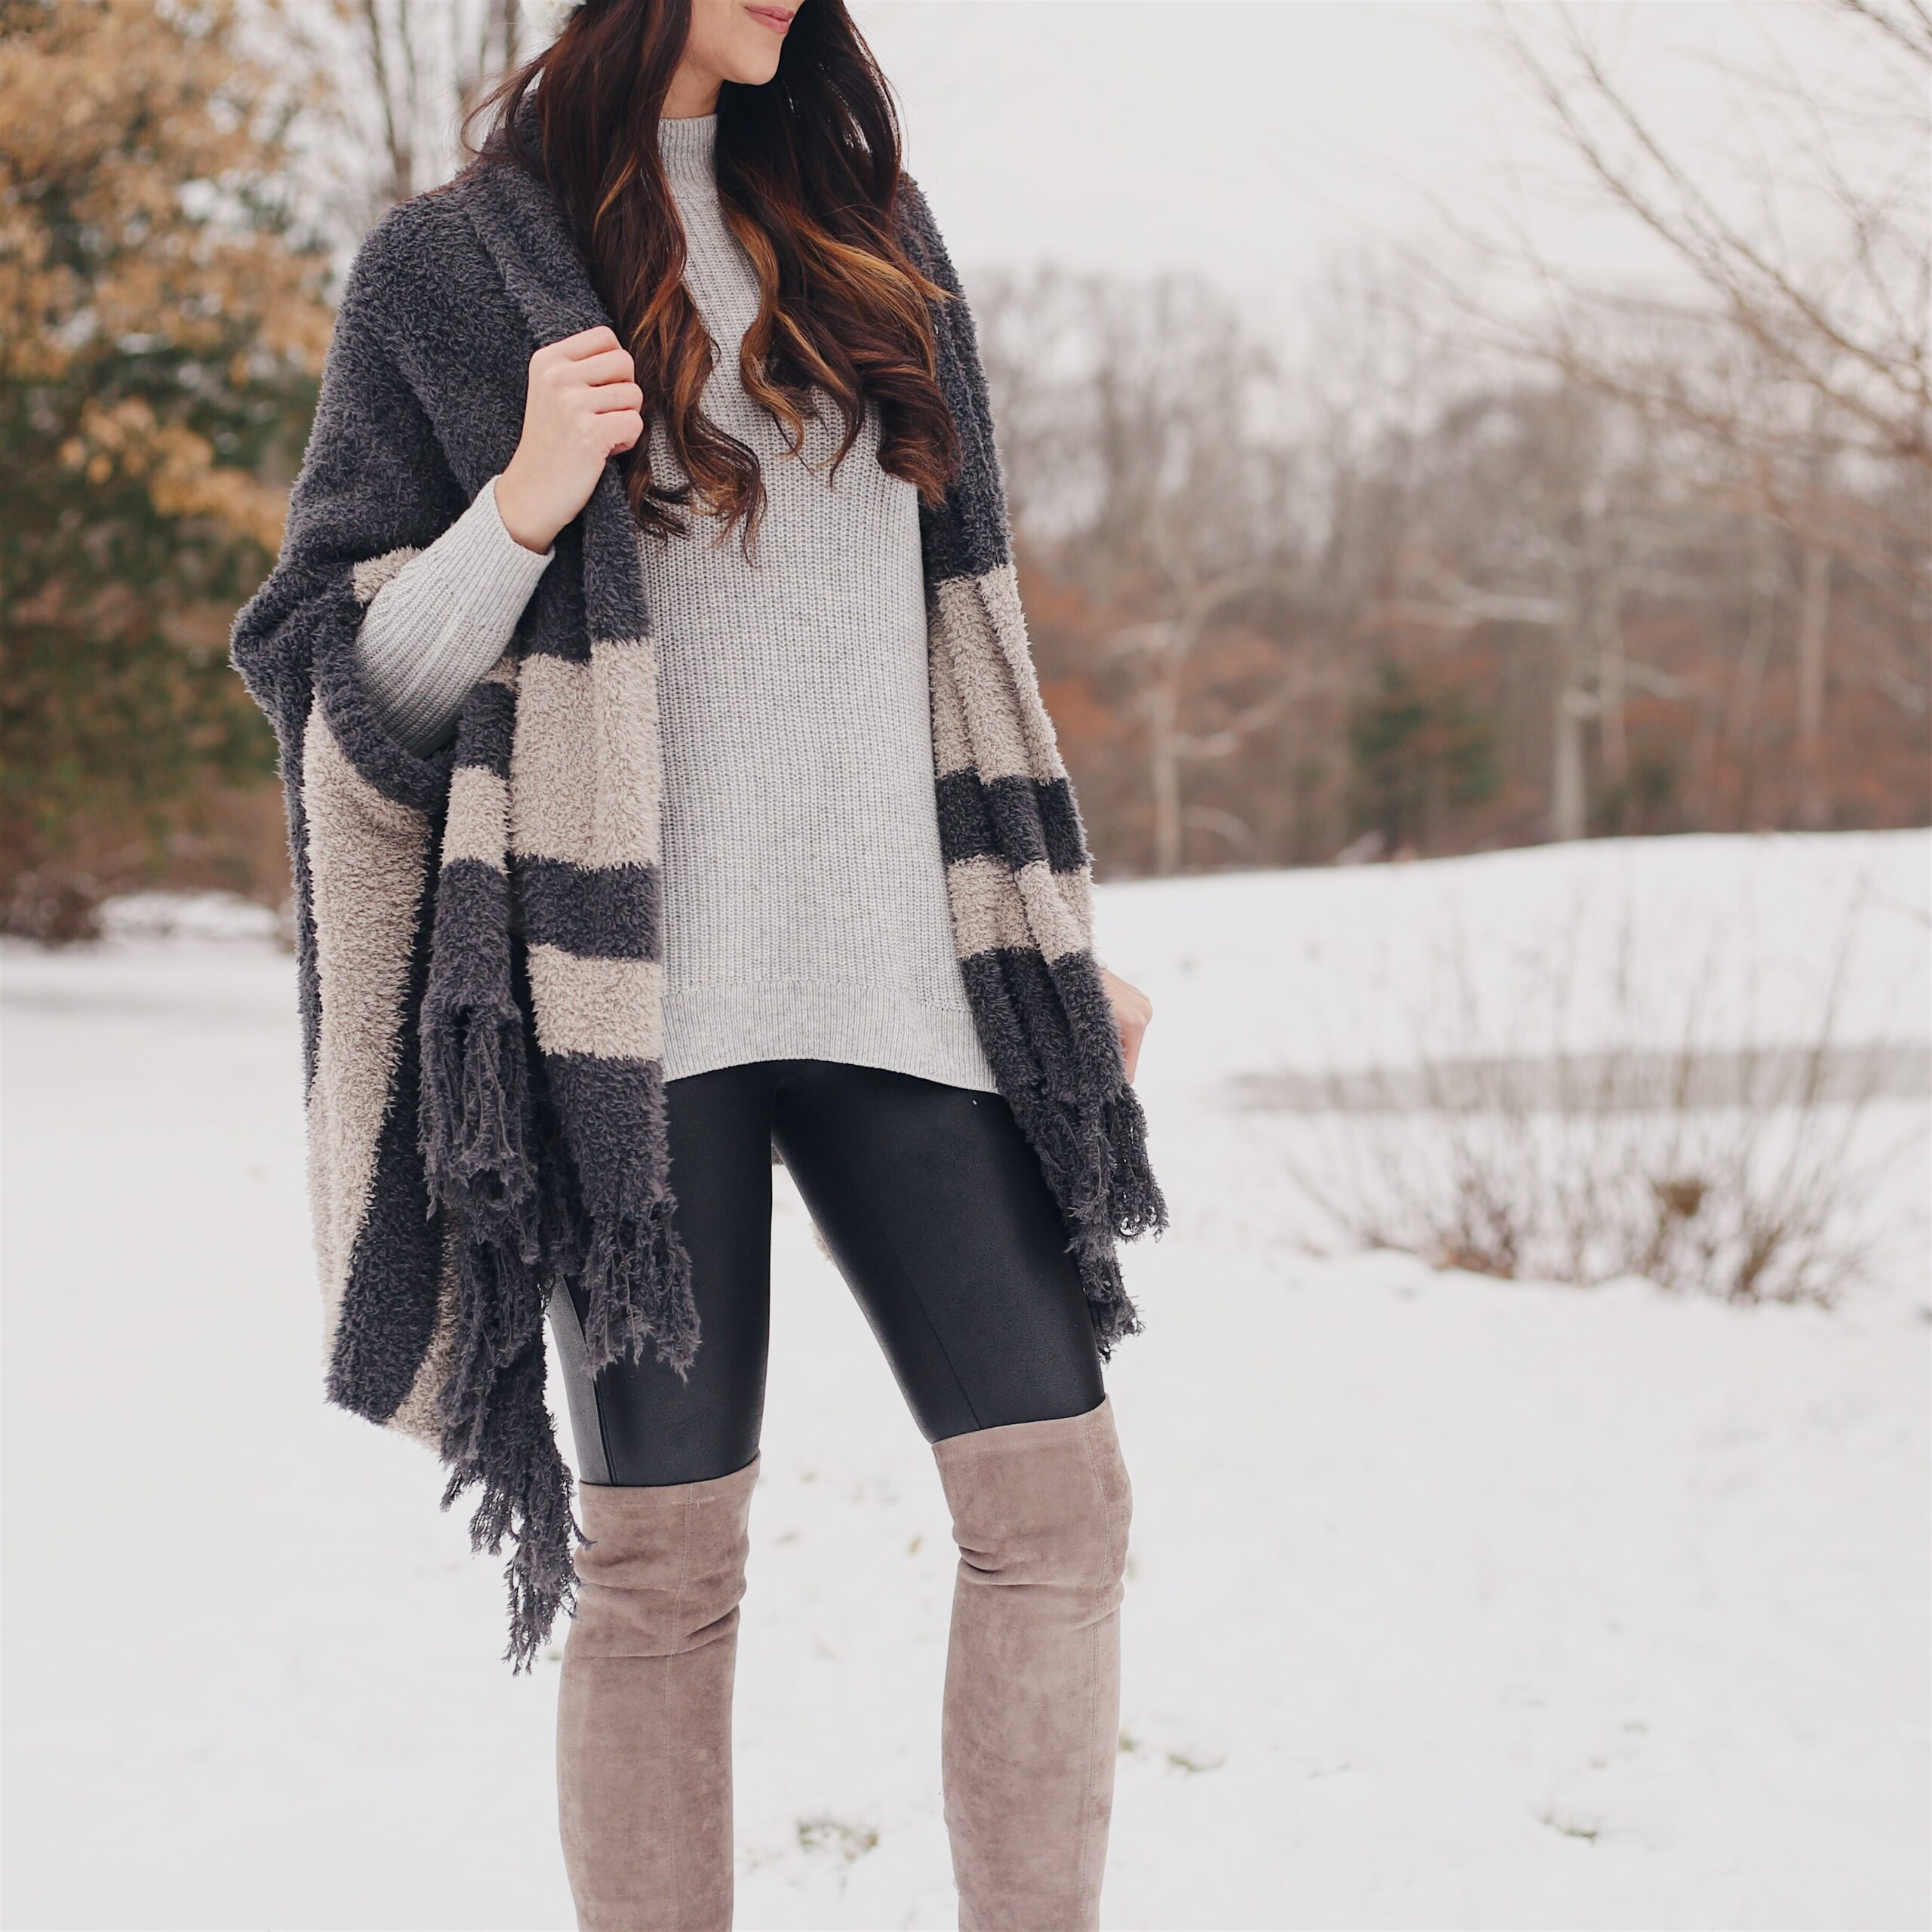 cozy wrap, cute winter outfit